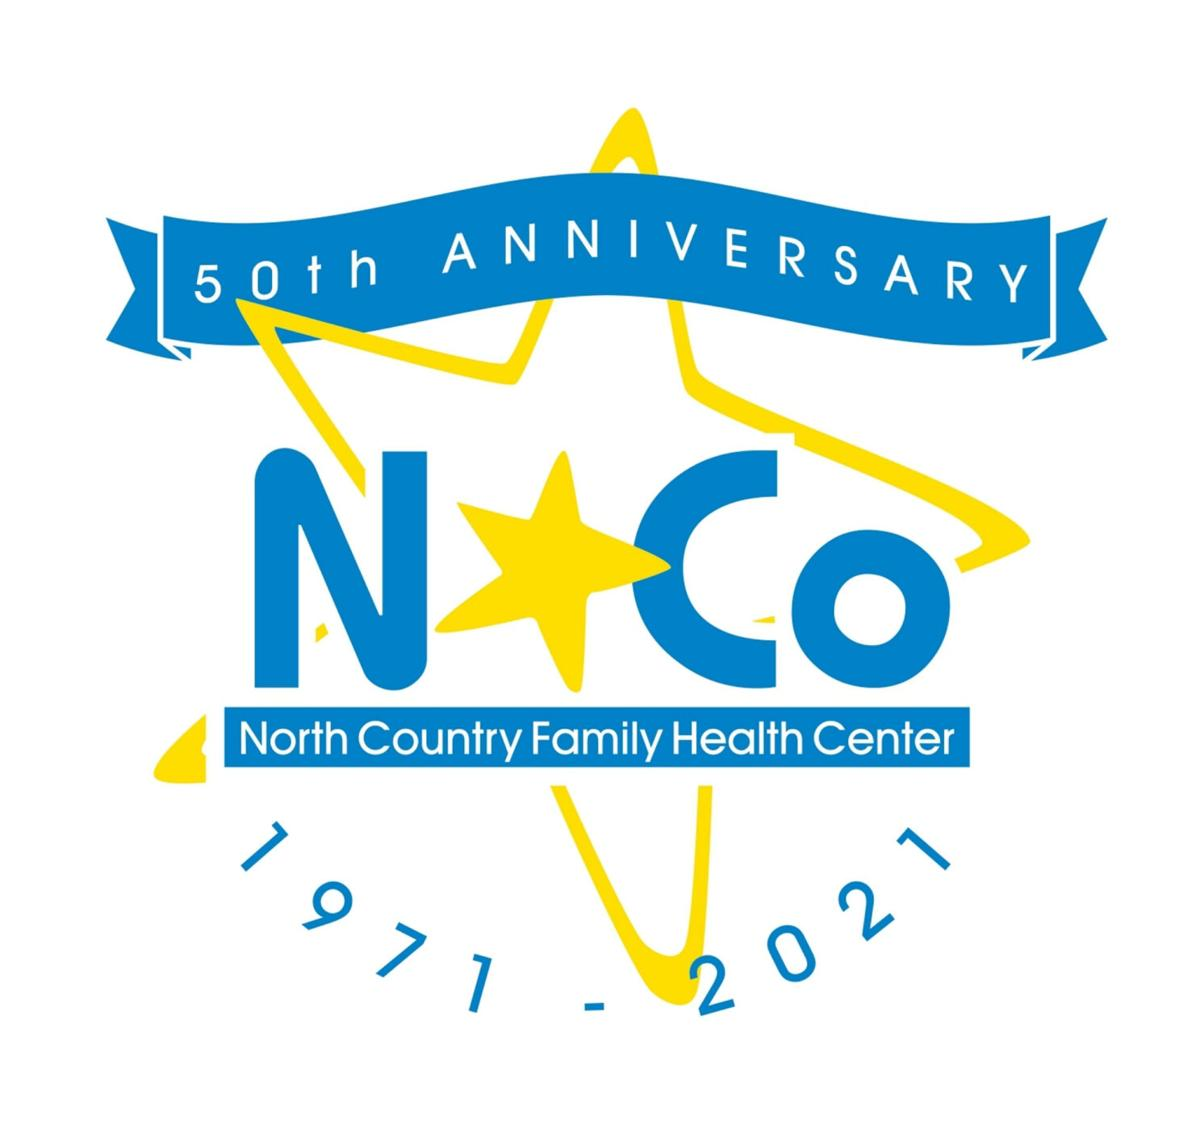 Expansion planned as health center turns 50